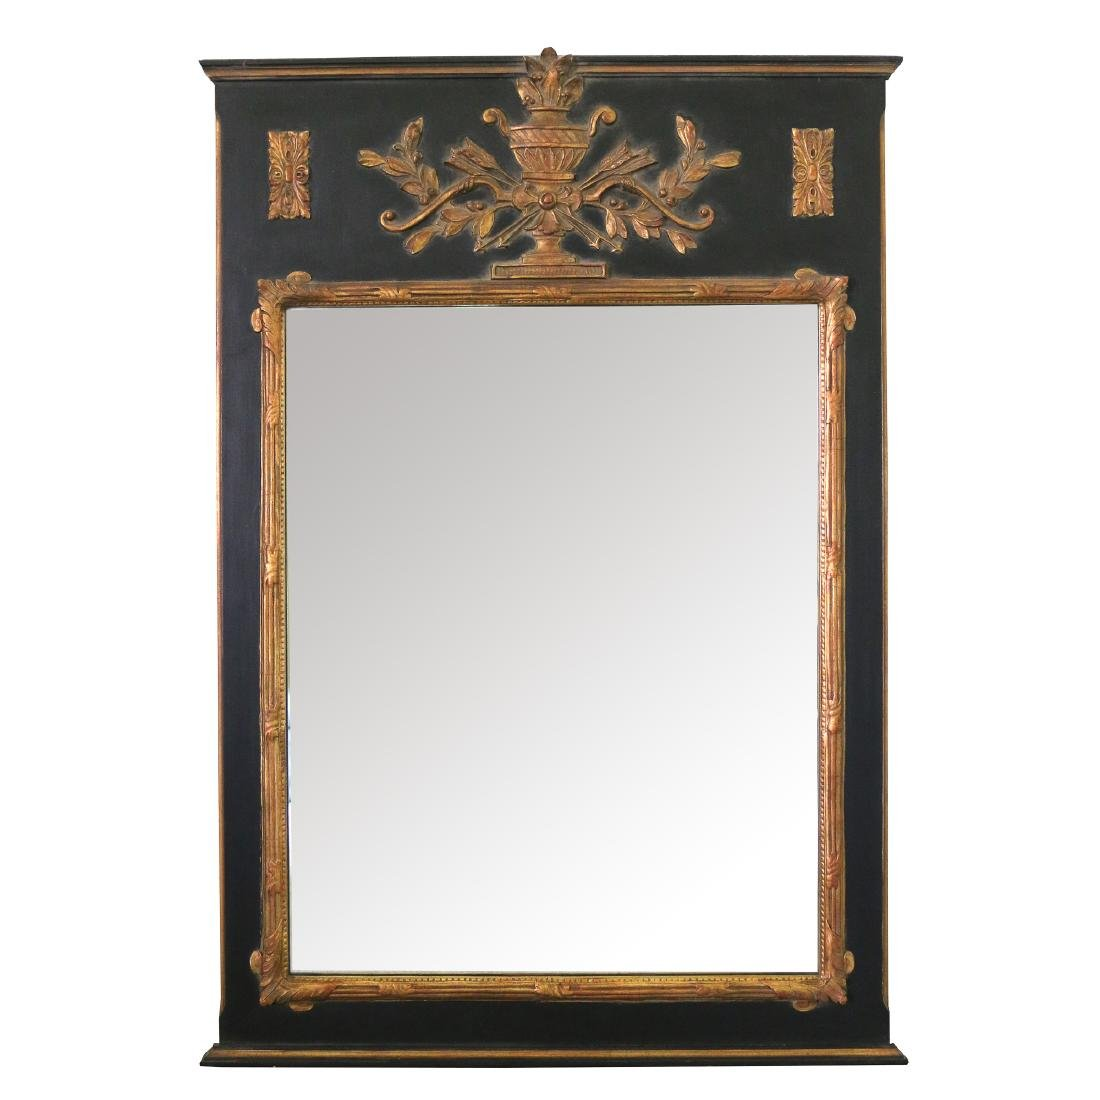 20th FRENCH WALL MIRROR